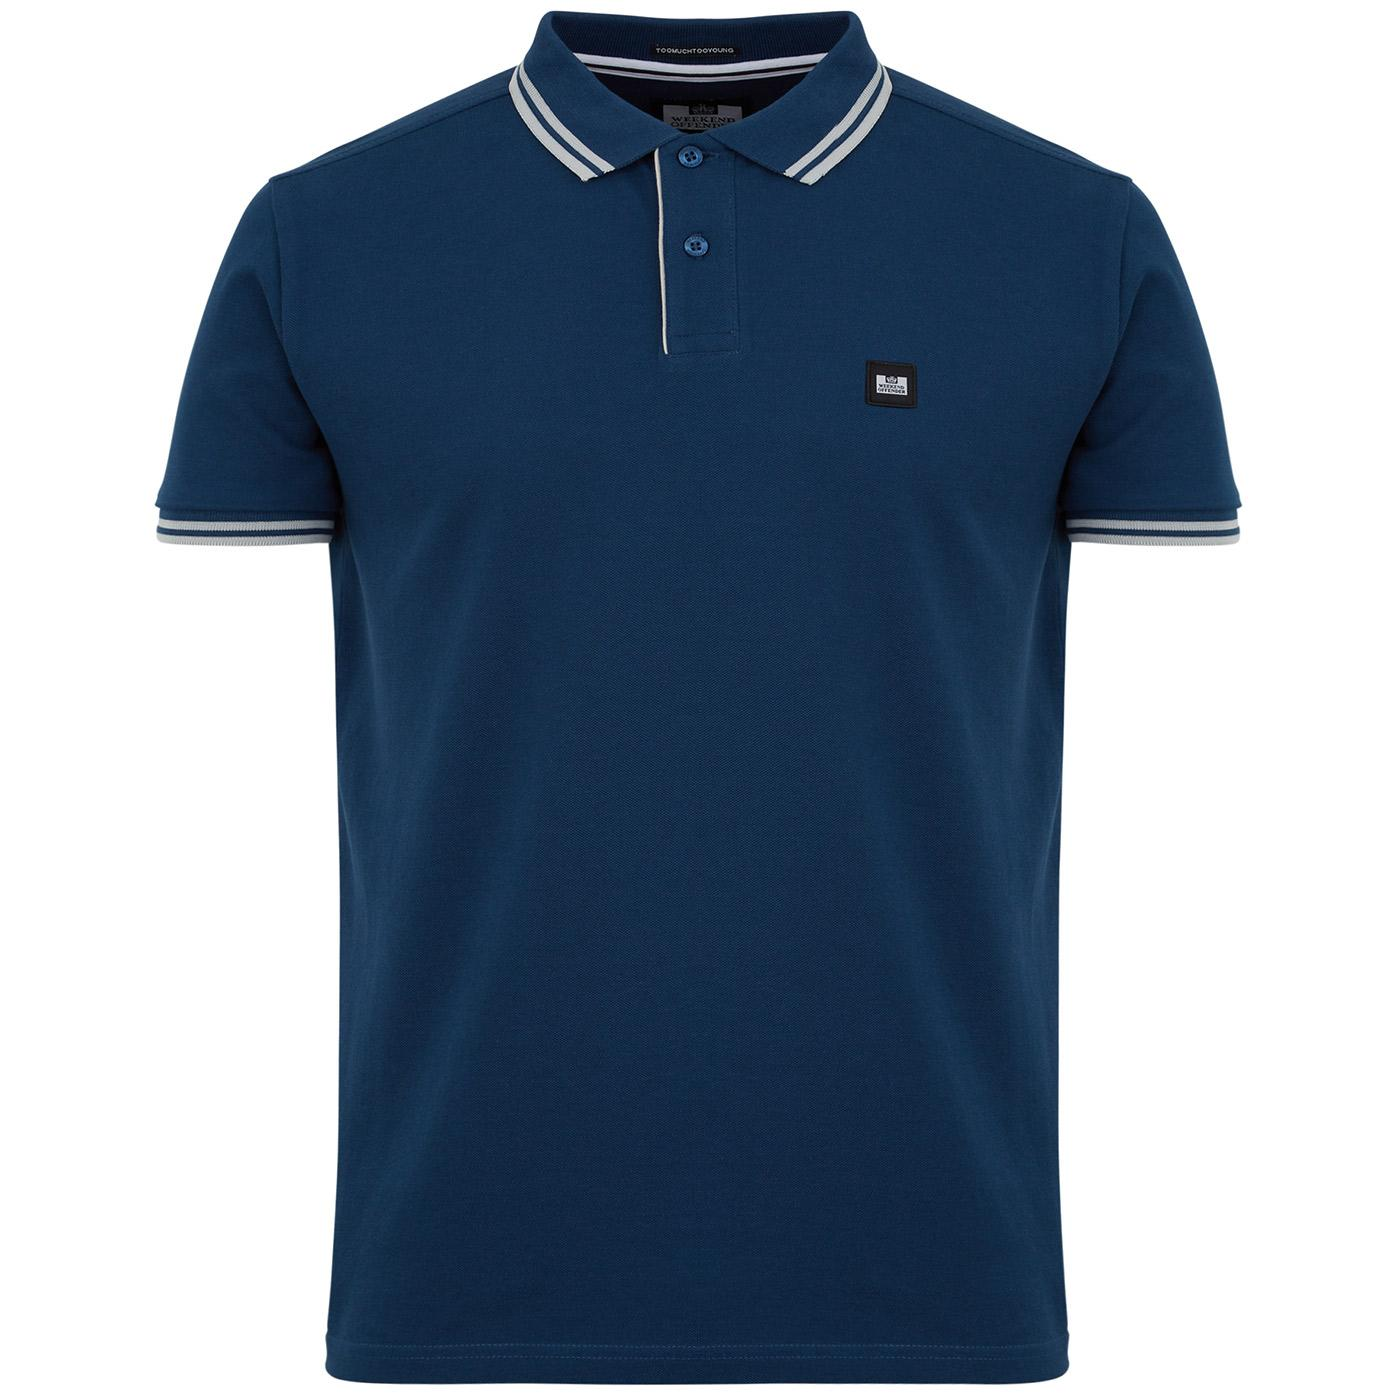 Viverno WEEKEND OFFENDER Mod Stripe Tipped Polo D